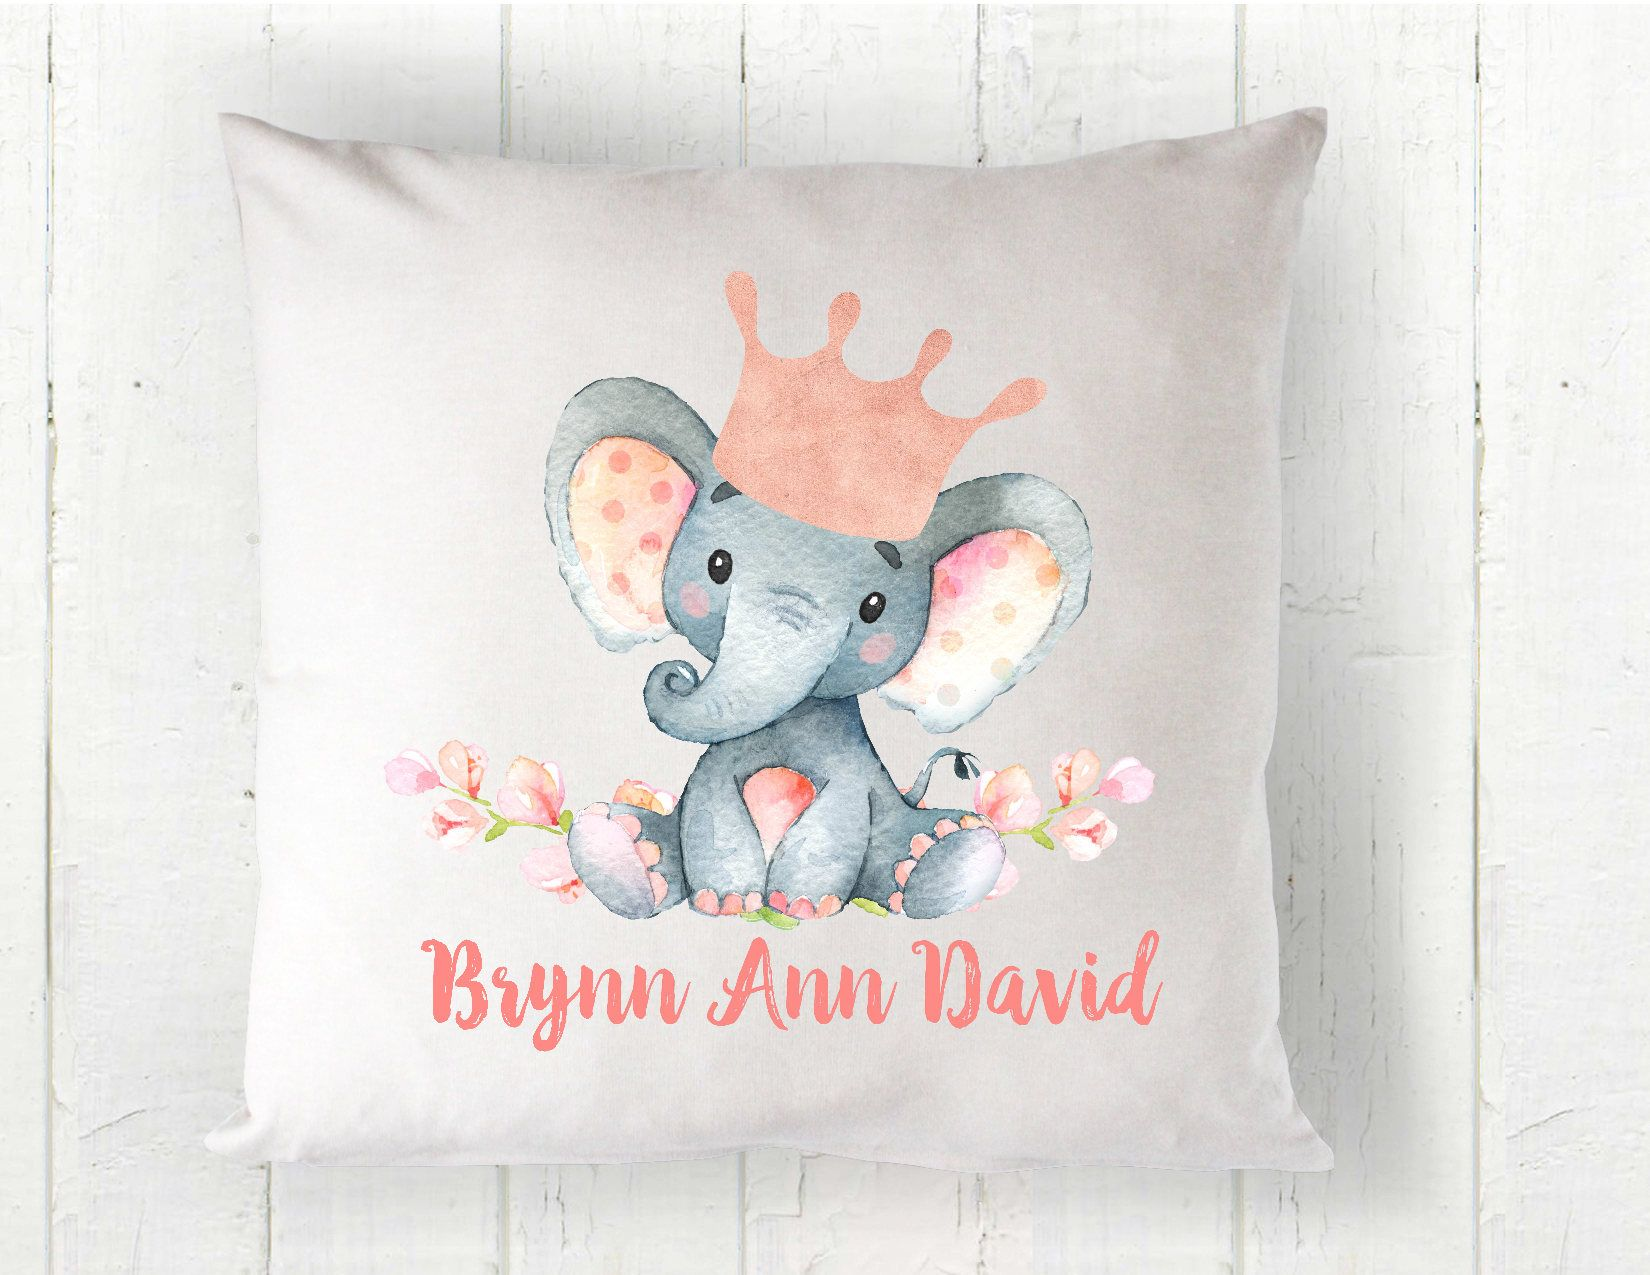 Elephant Pillow Personalized Pillow Baby Pillow Watercolor Elephant Personalized Baby Gift Baby Gift Baby Gir Baby Pillows Elephant Pillow Personalized Pillows